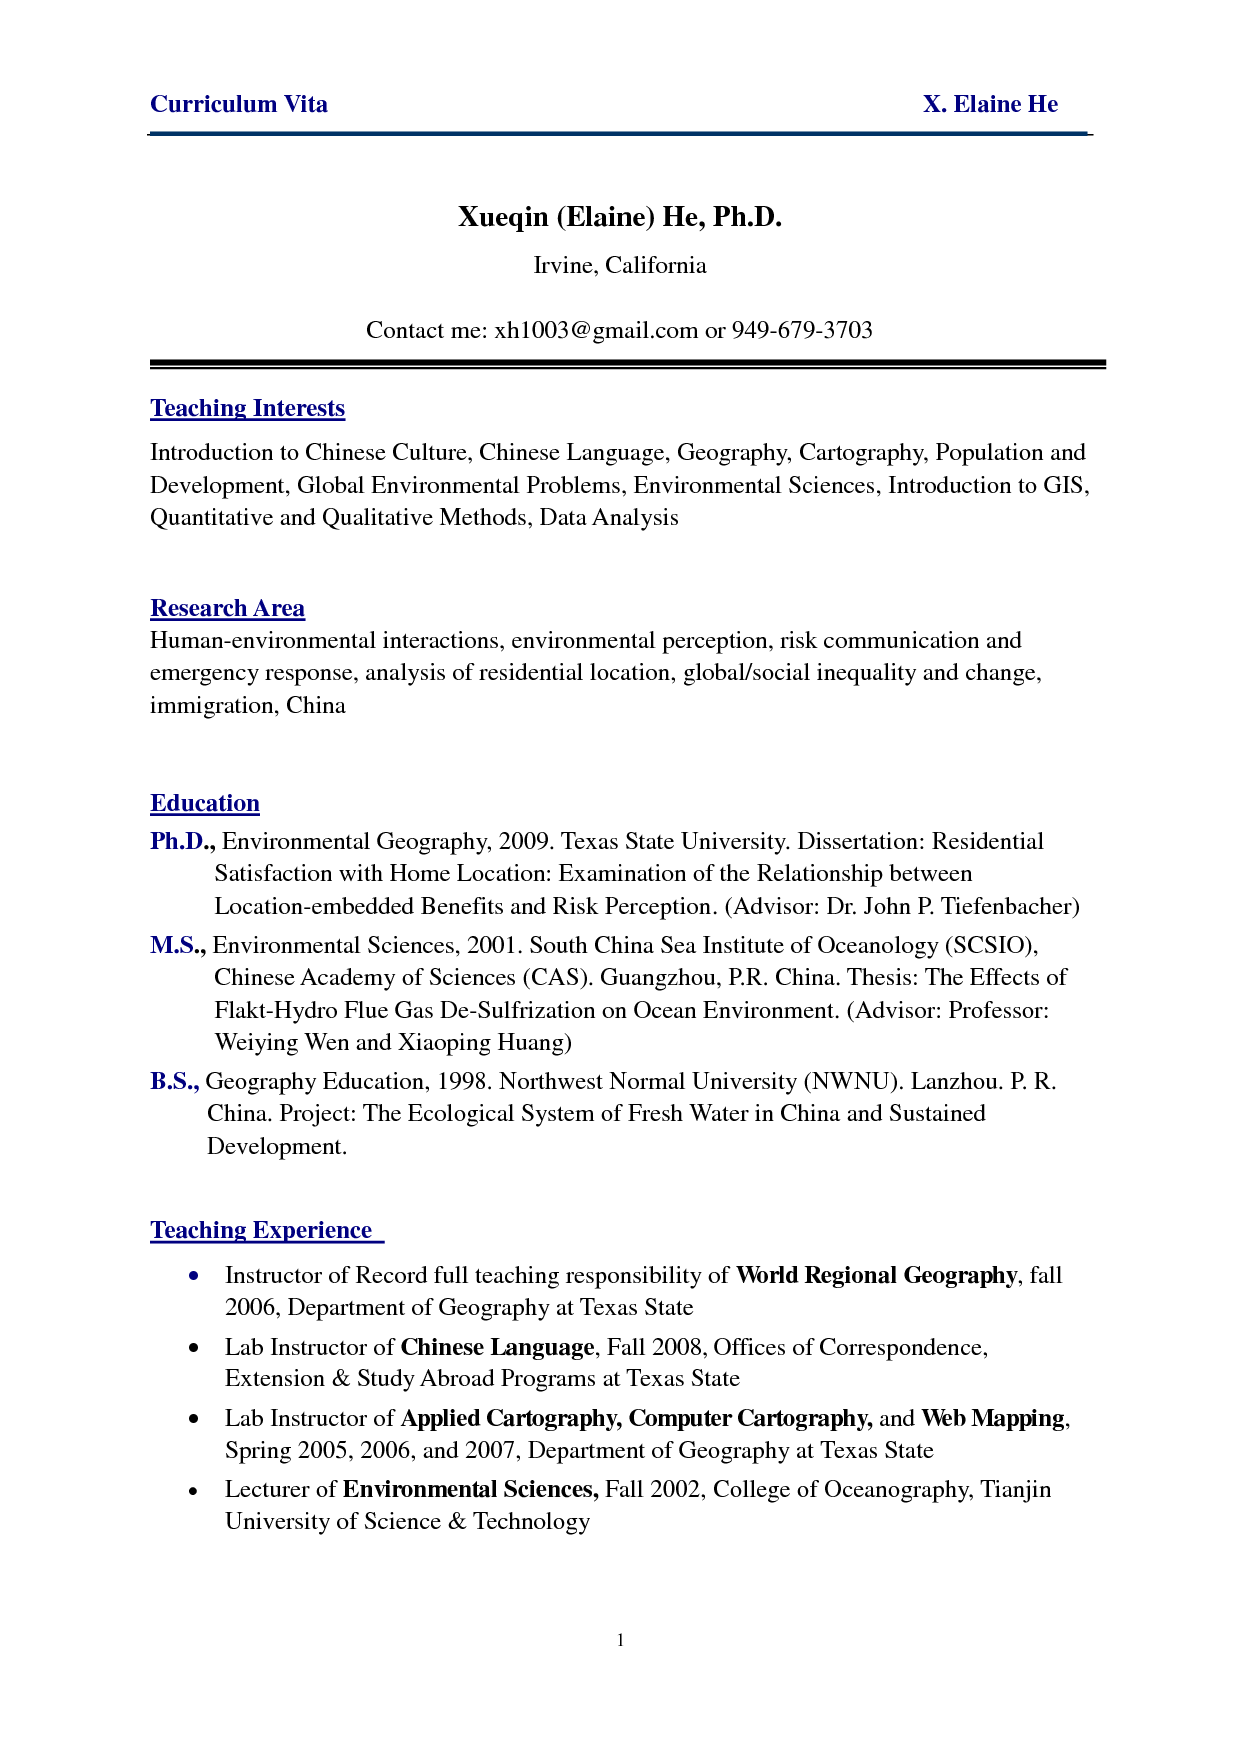 New Grad Resume Template New Grad Lpn Resume Sample  Nurse  Pinterest